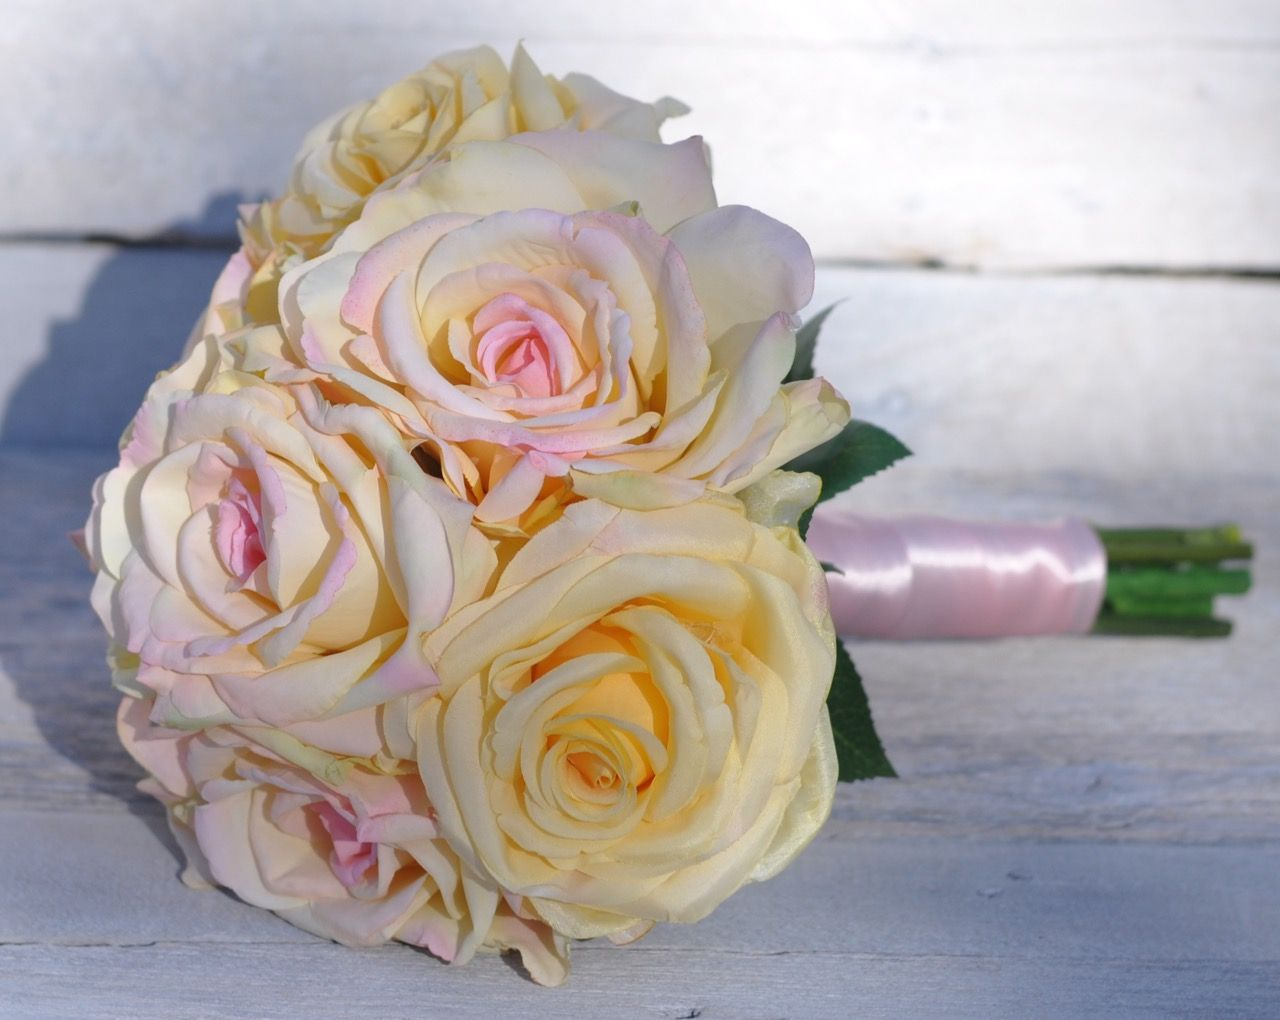 Yellow Rose Bouquet With Subtle Pink Hues Mixed In By Holly S Wedding Flowers Wedding Flowers Holly Wedding Silk Wedding Bouquets